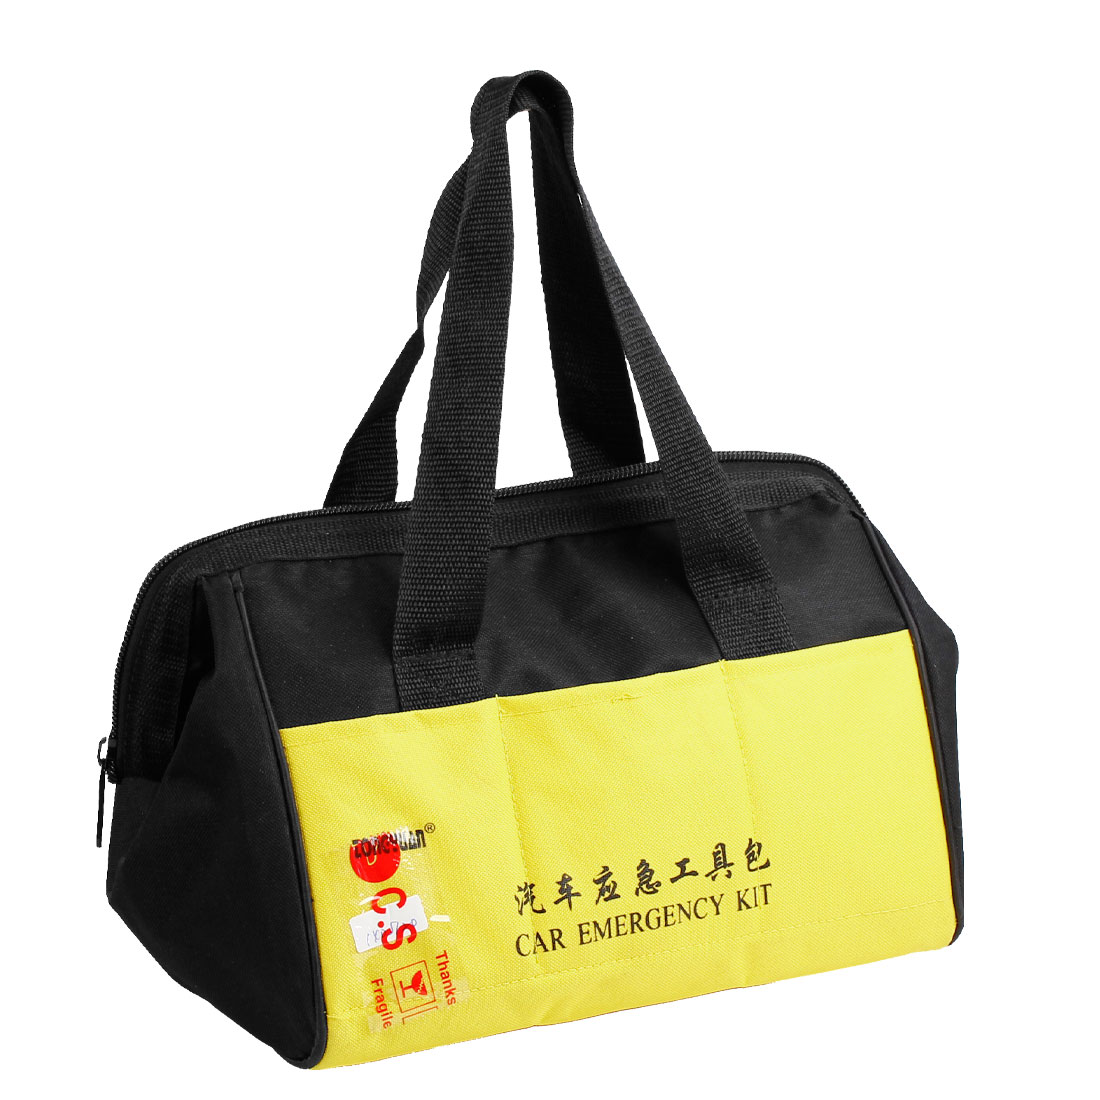 Auto Car Black Yellow Nylon Zipper Closure Emergency Kit Handbag